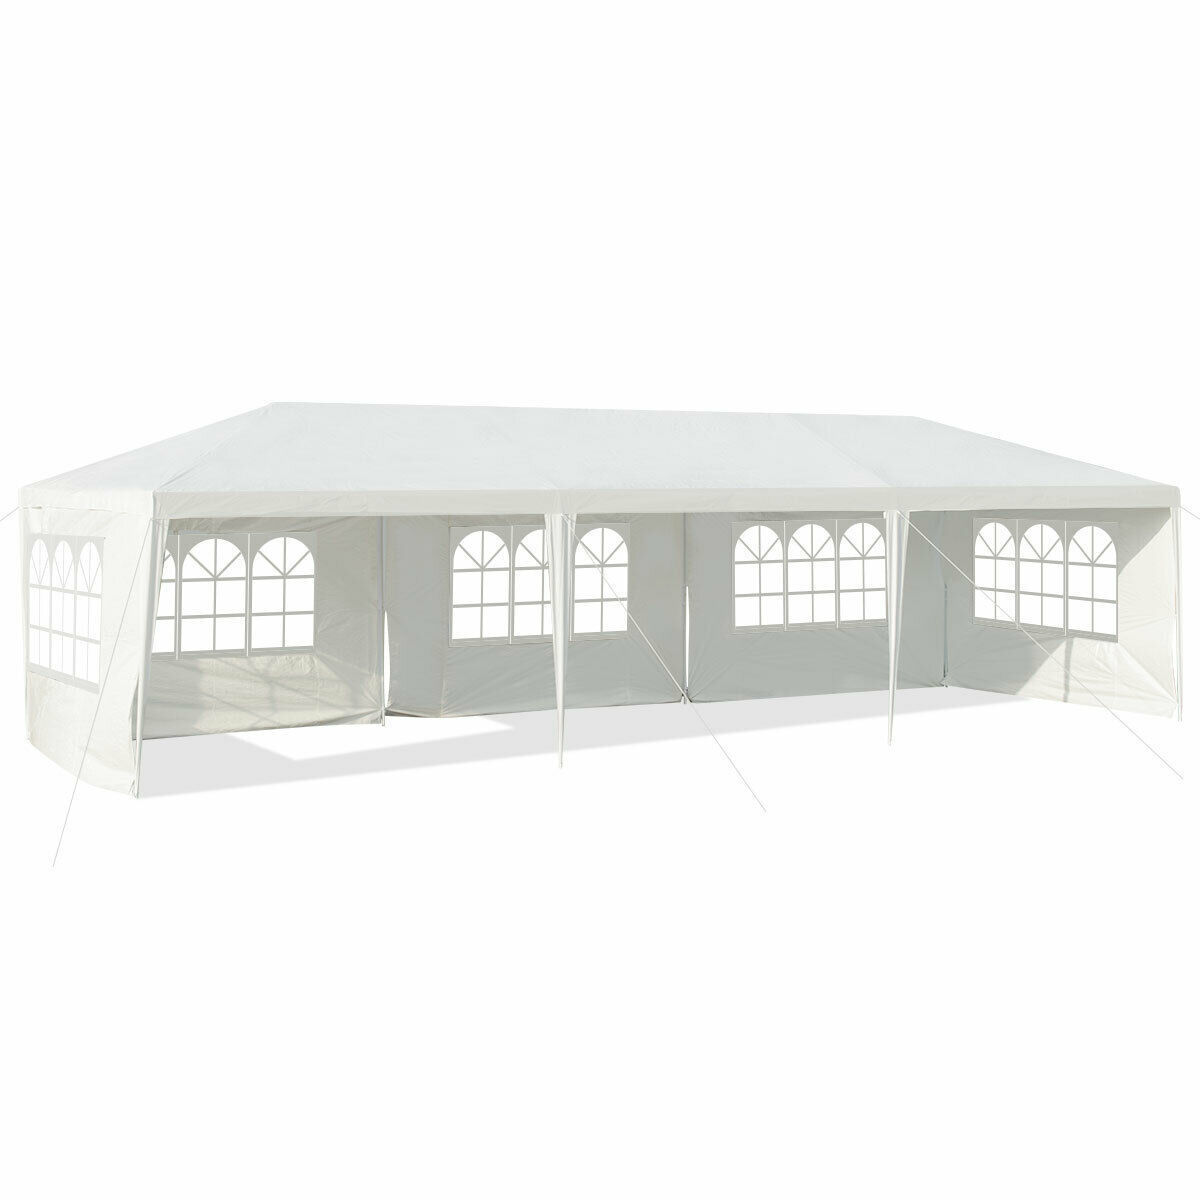 Picture of Outdoor 10' x 30' Tent with 5 Walls - White